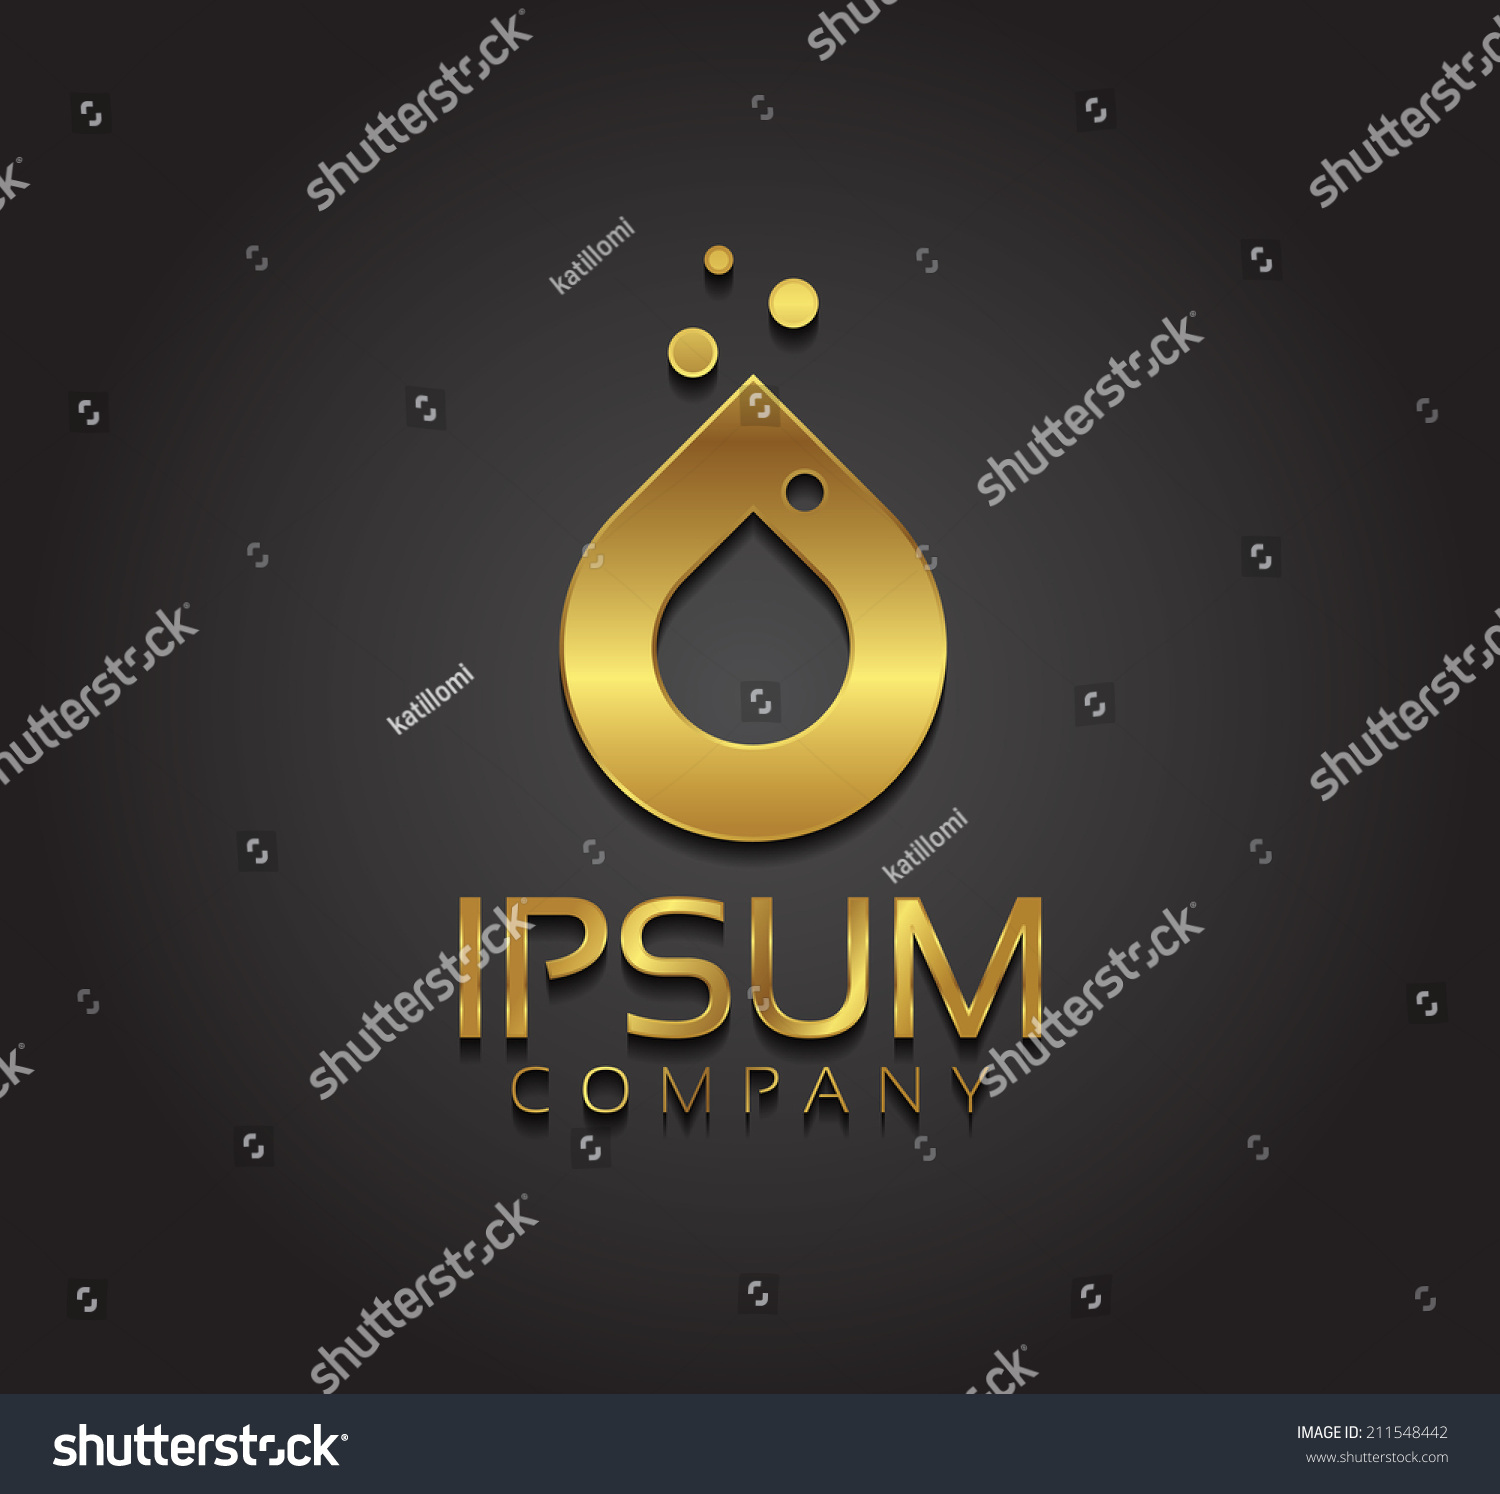 Vector graphic golden water drop symbol stock vector 211548442 vector graphic golden water drop symbol with sample text biocorpaavc Image collections